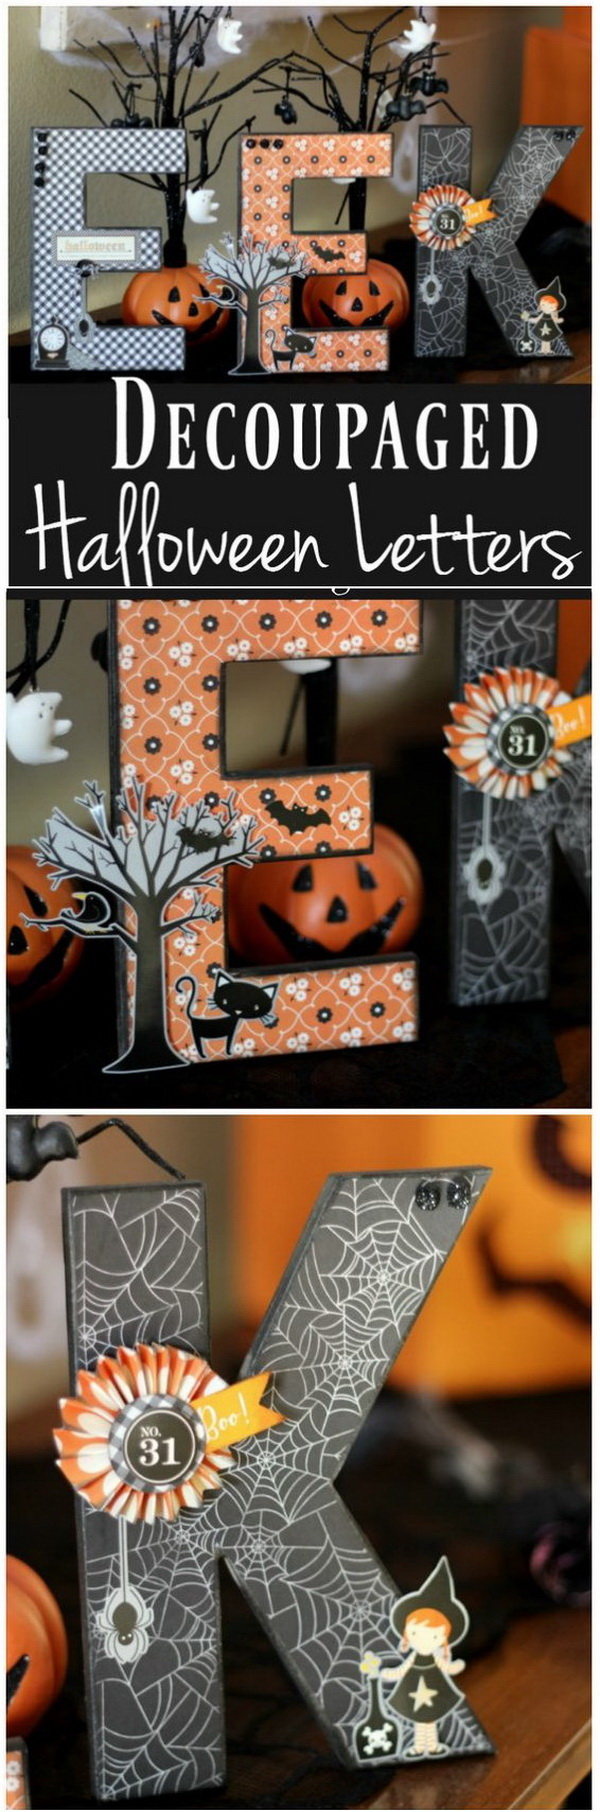 Decoupaged Halloween Letters.What a fun way to add that unique, whimsical touch to your Halloween Decor with these decoupages Halloween themed letters!